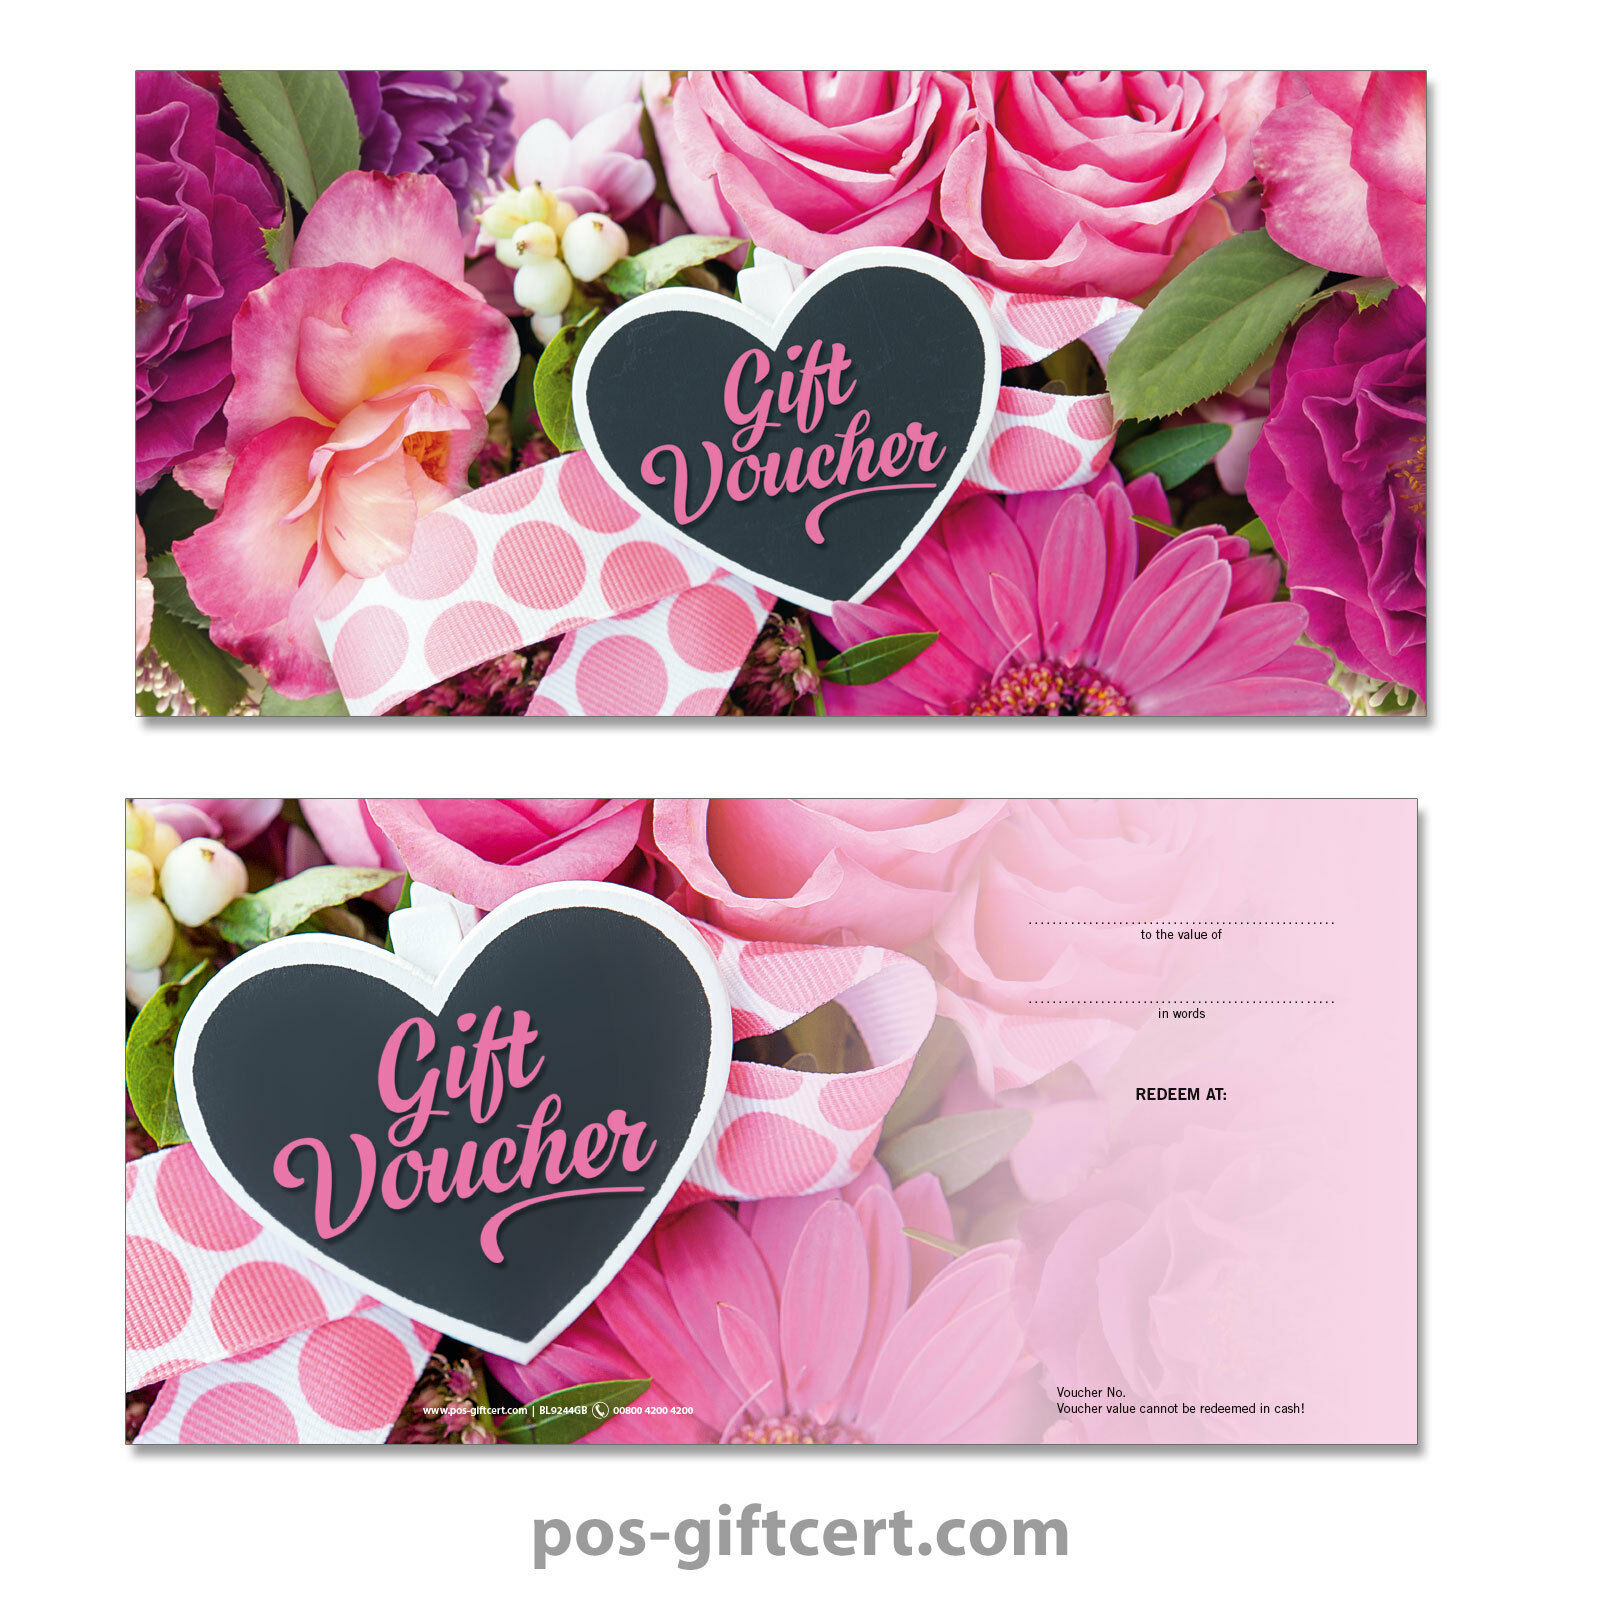 Universal gift vouchers + envelopes for all occasions, flowers flowers flowers BL9244GB 869268